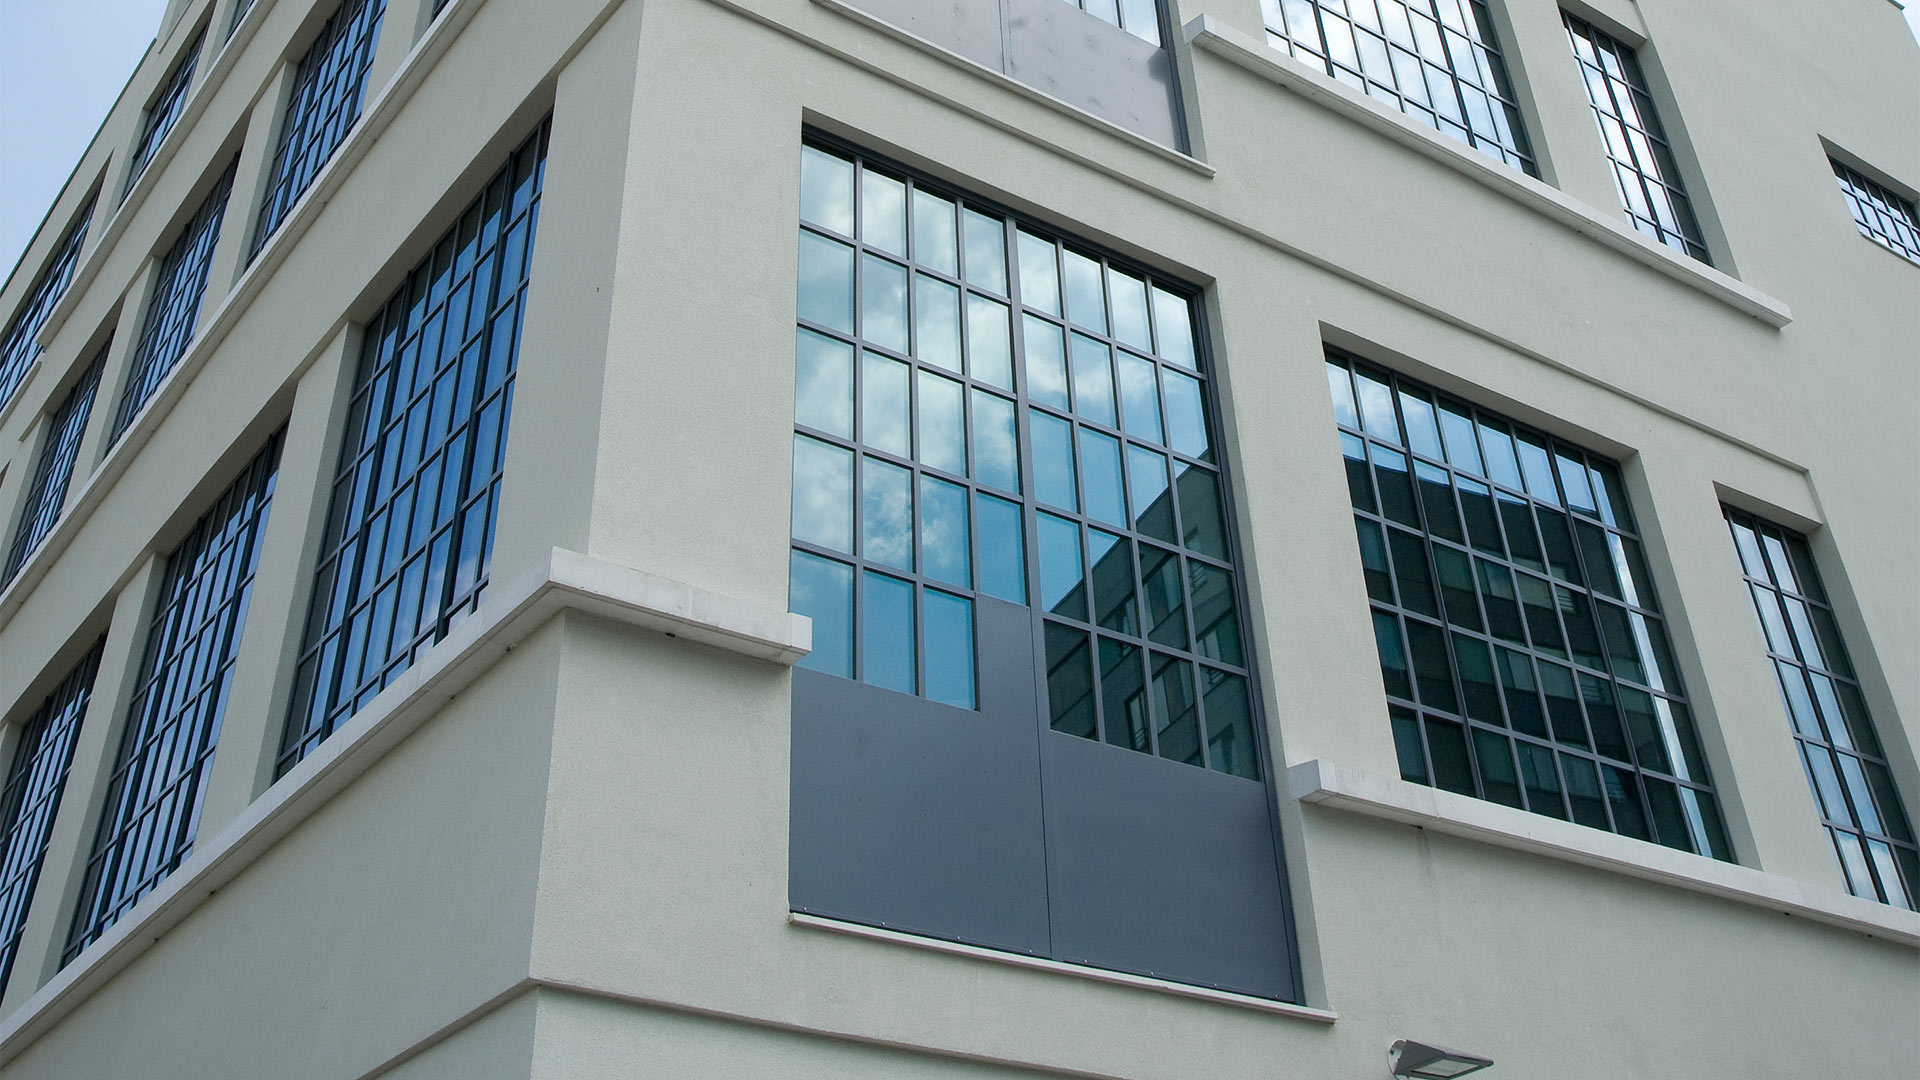 Big steel glazed windows